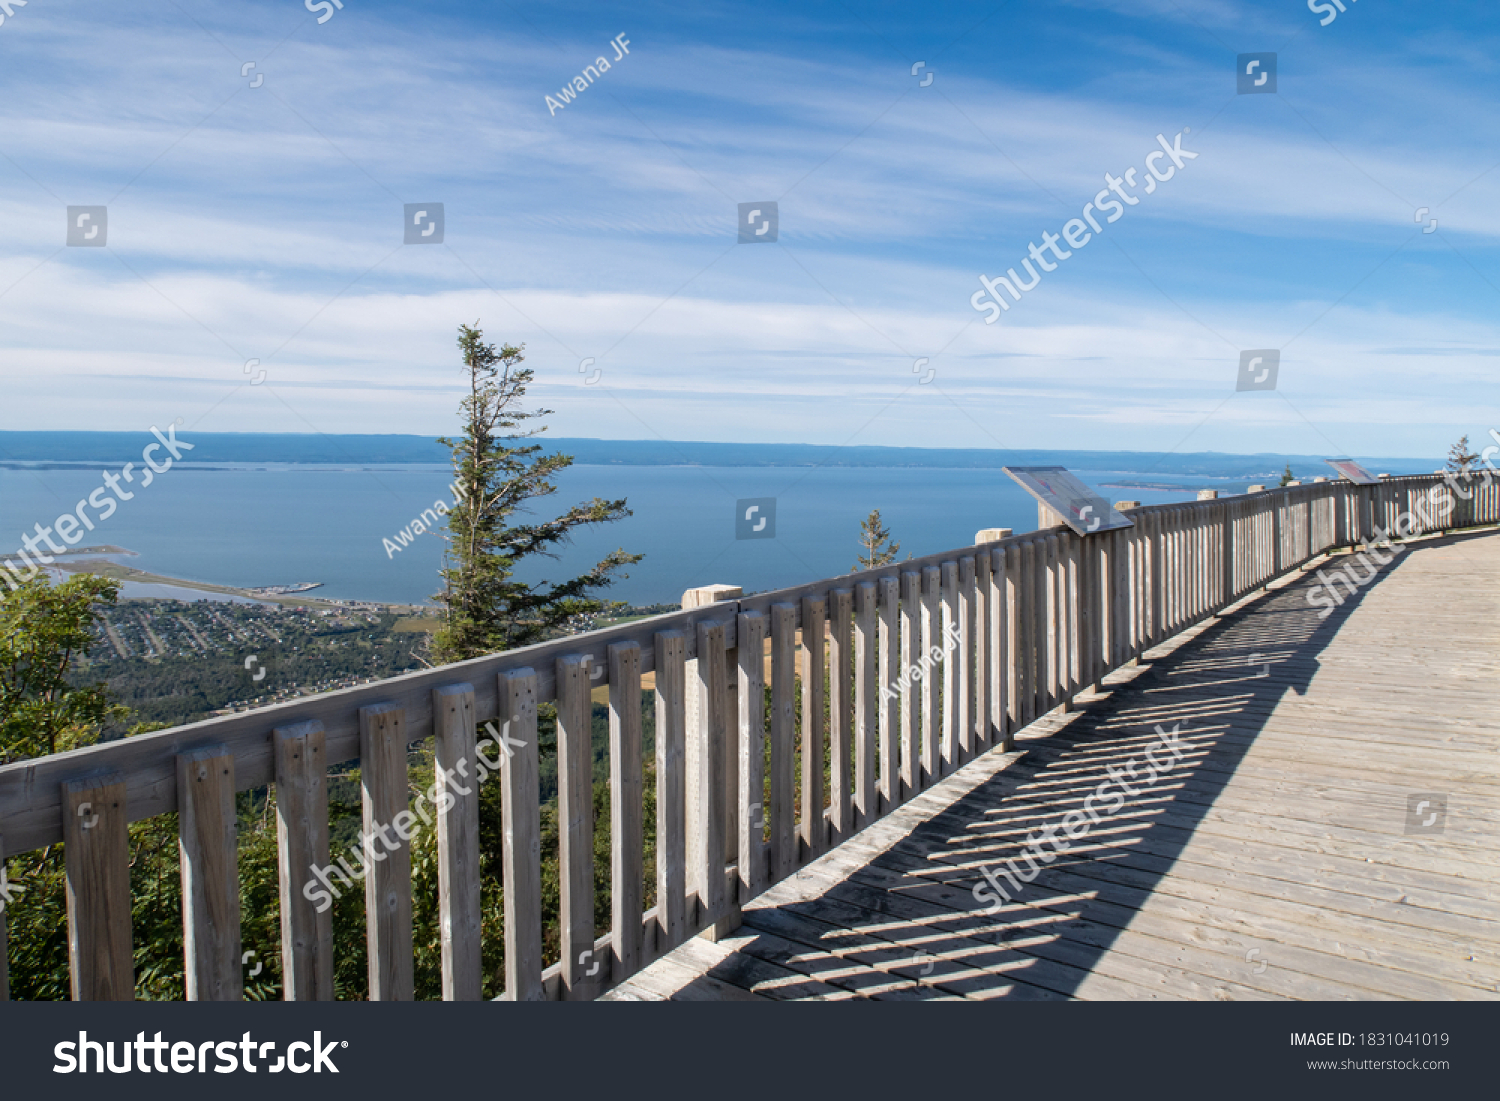 stock-photo-view-of-the-belvedere-at-the